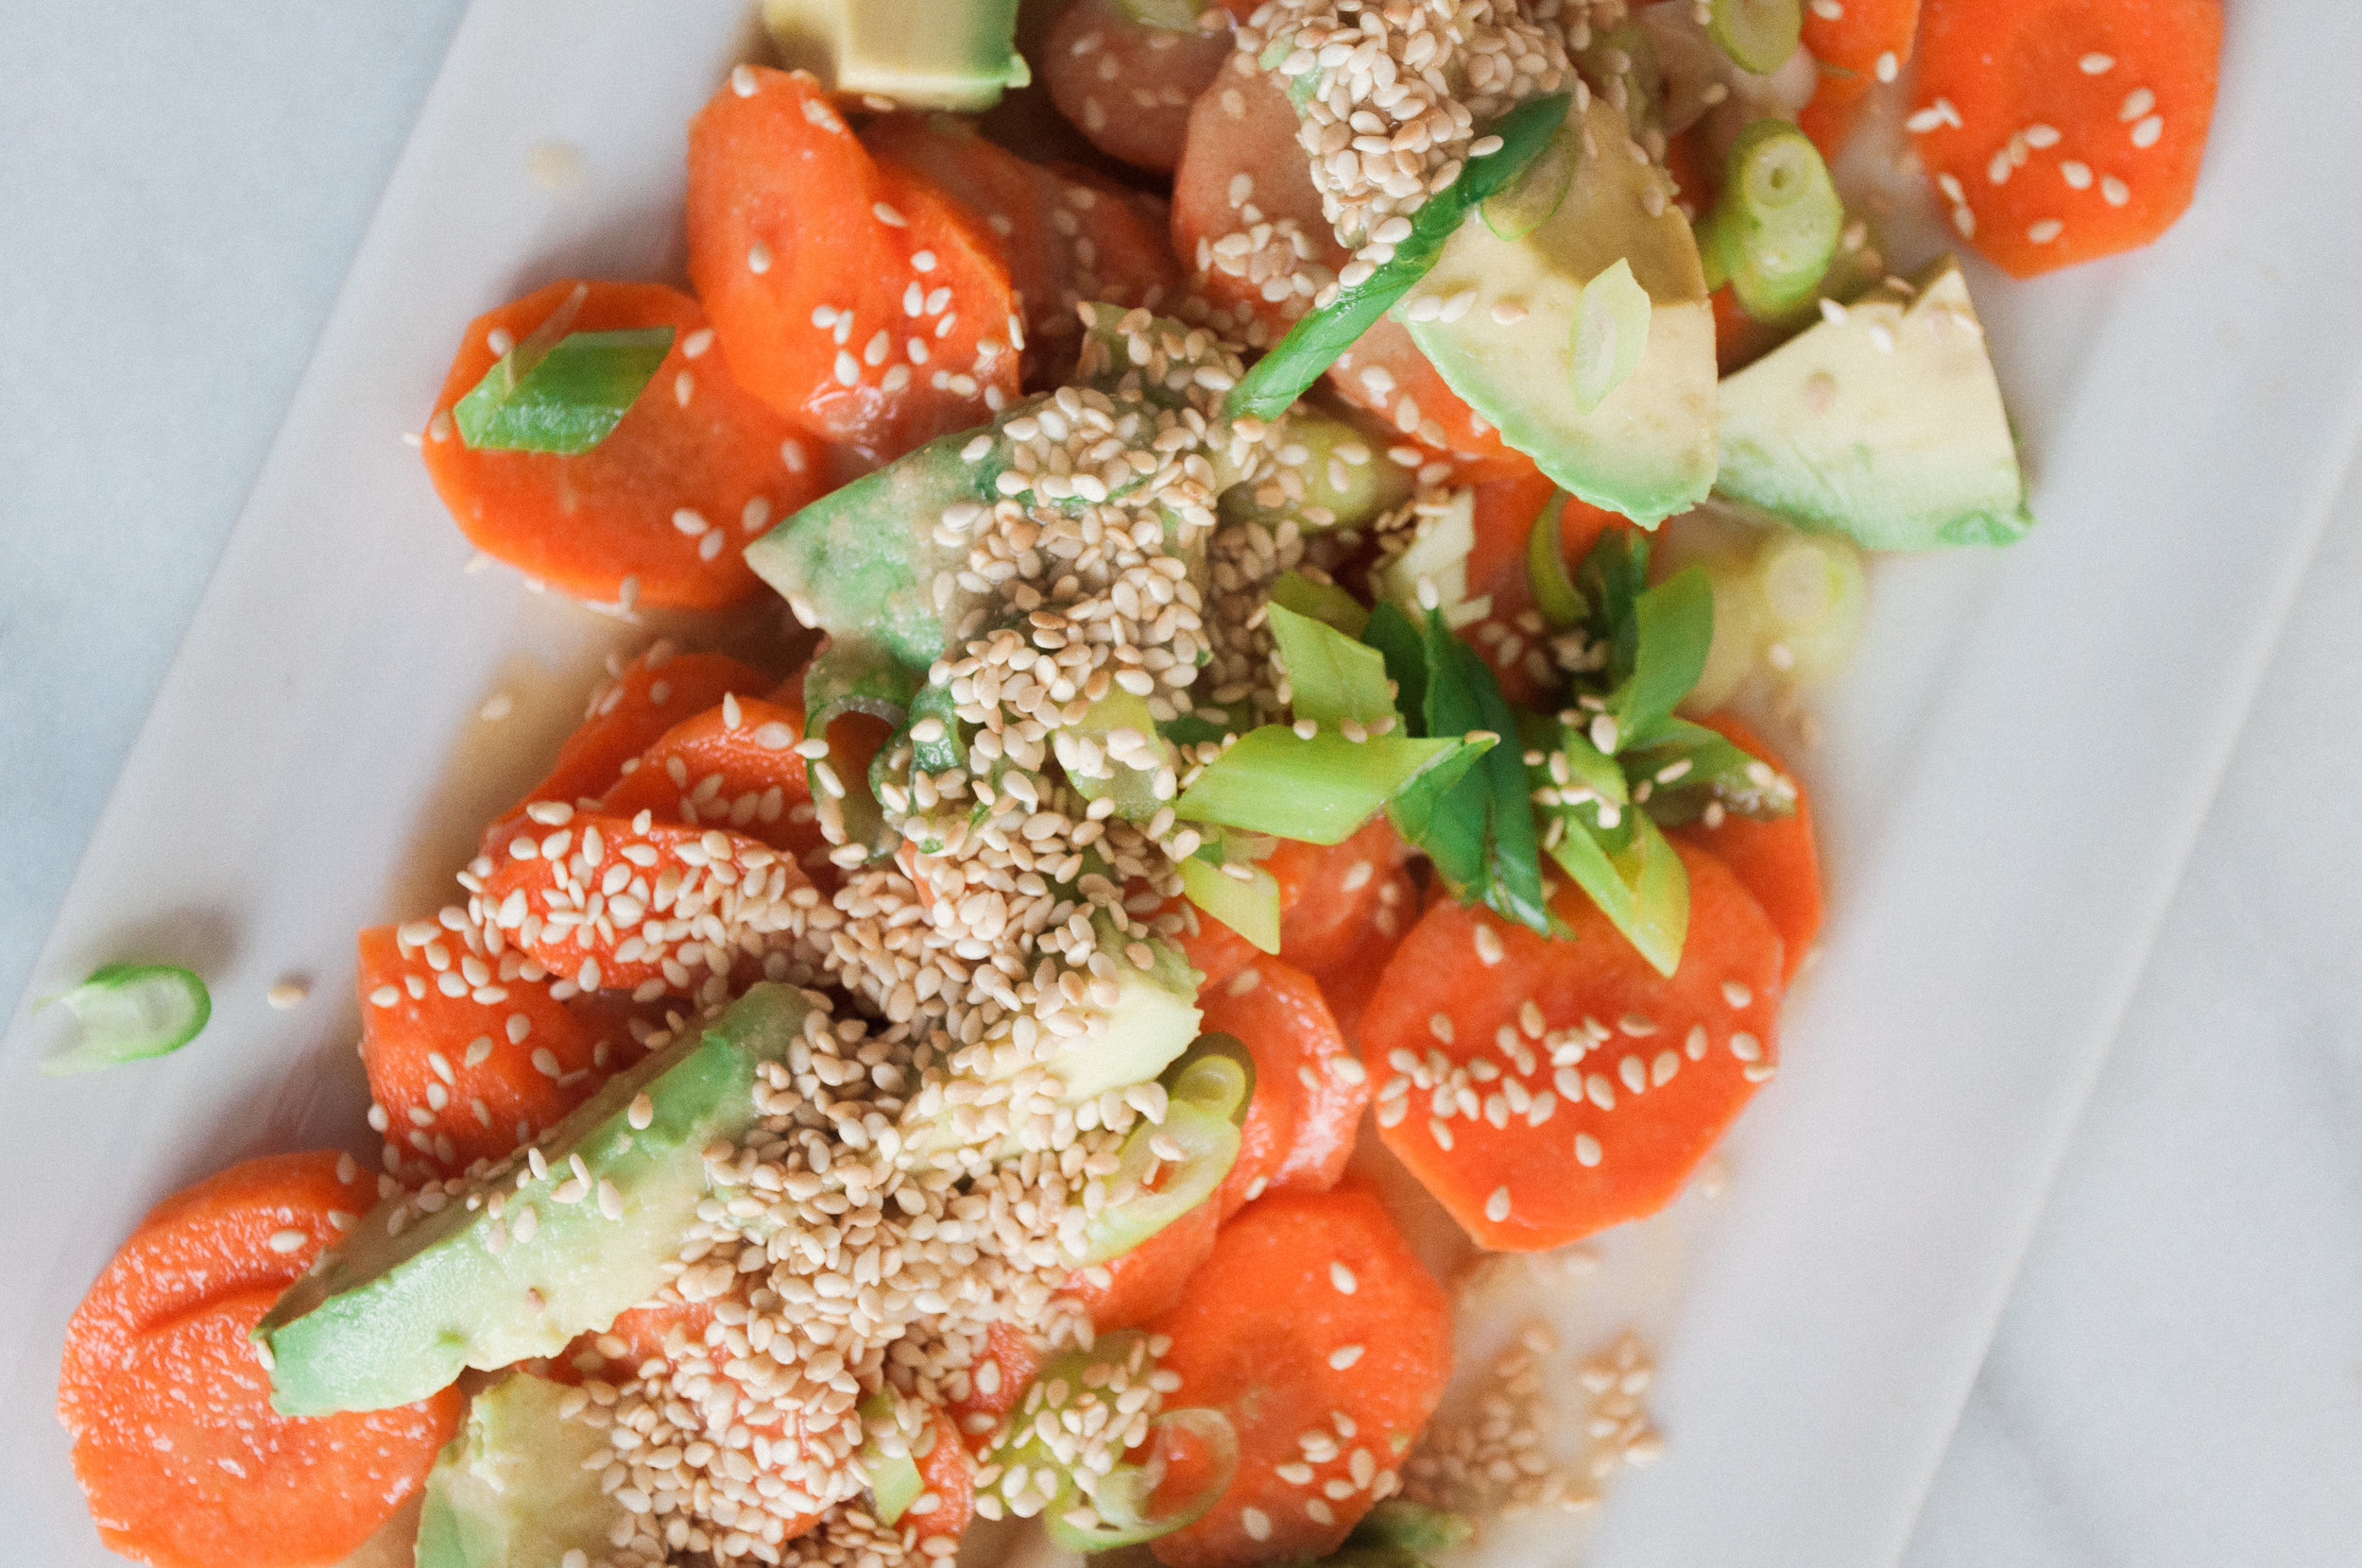 Summerfield Delight by Meg Summerfield   Review of Small Victories Cookbook by Julia Turshen   Carrot Sesame Salad with Avocado